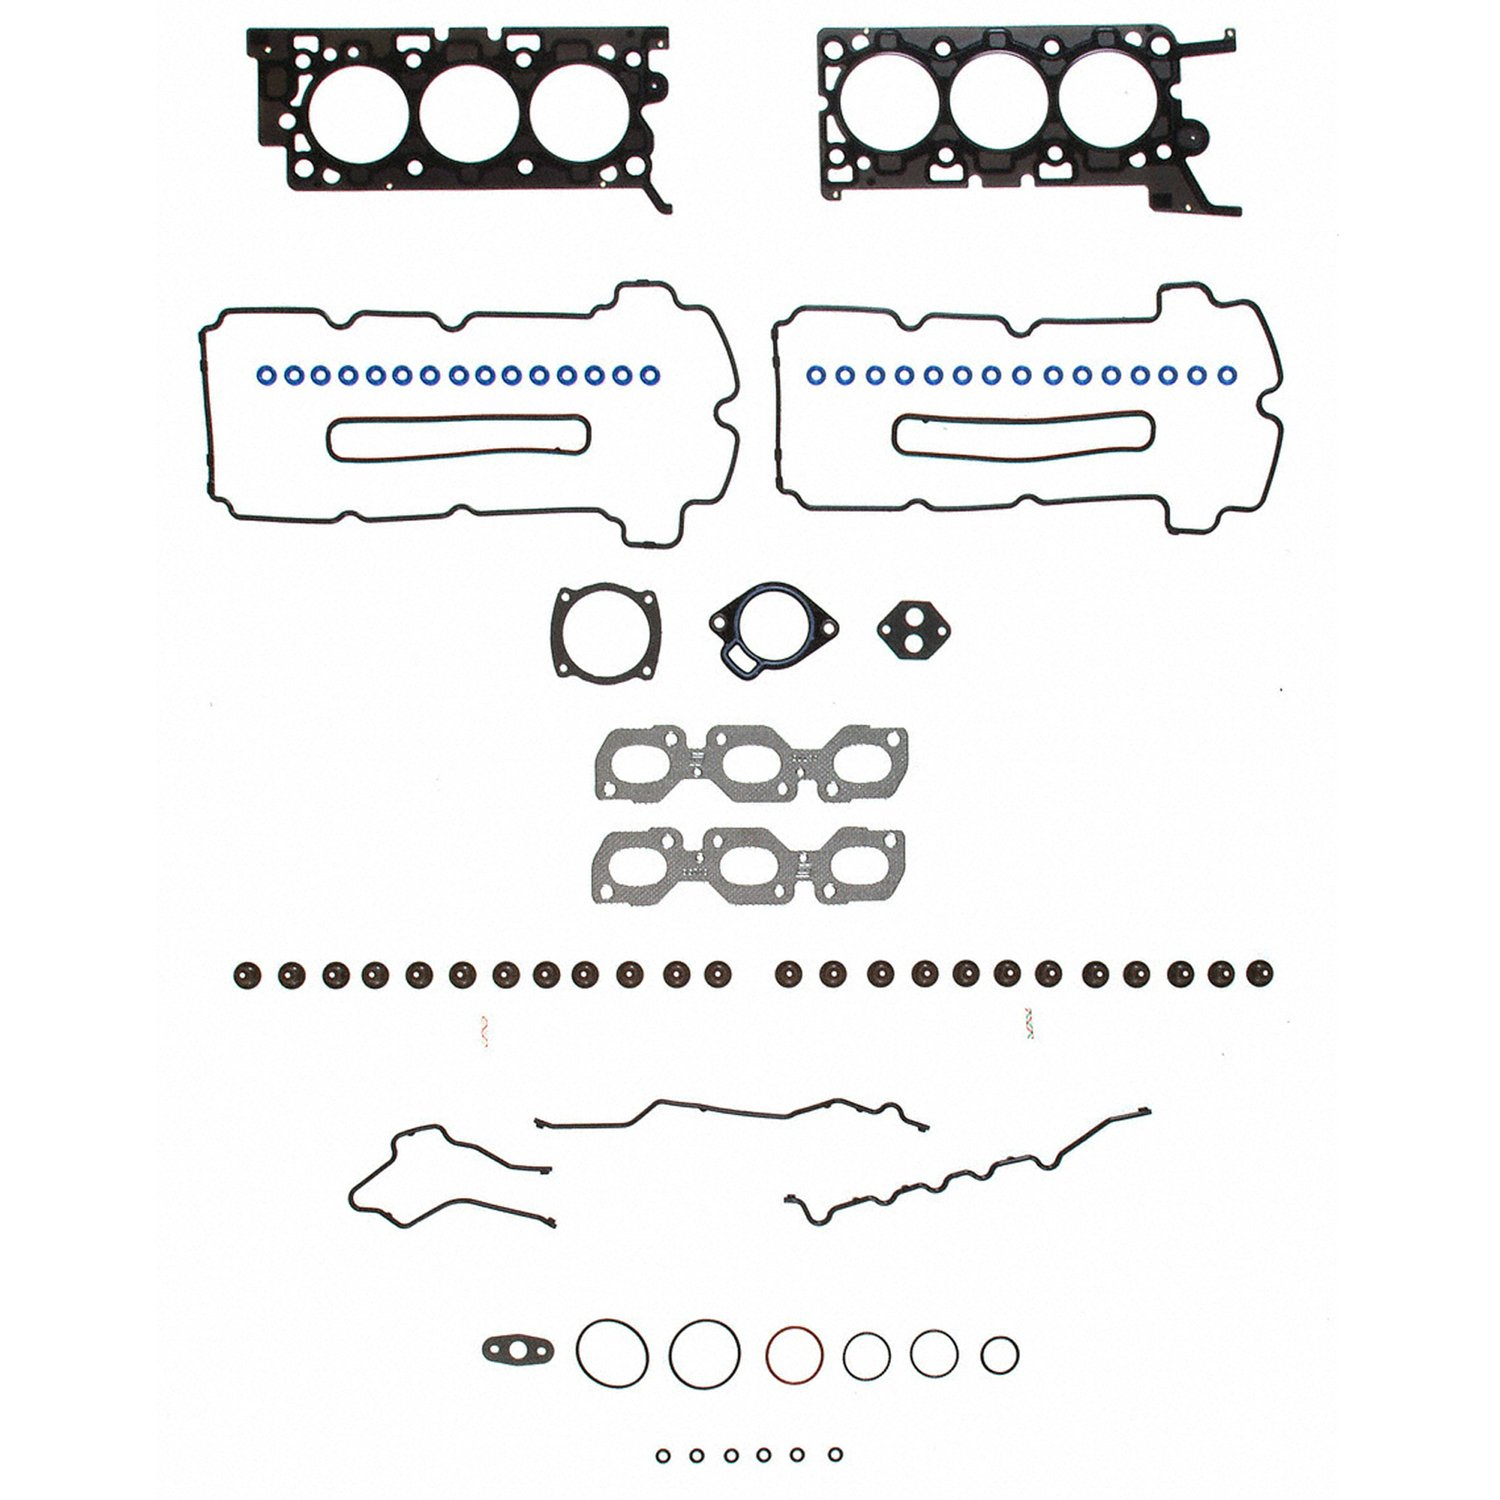 FelPro Engine Cylinder Head Gasket Set HS 26248 PT